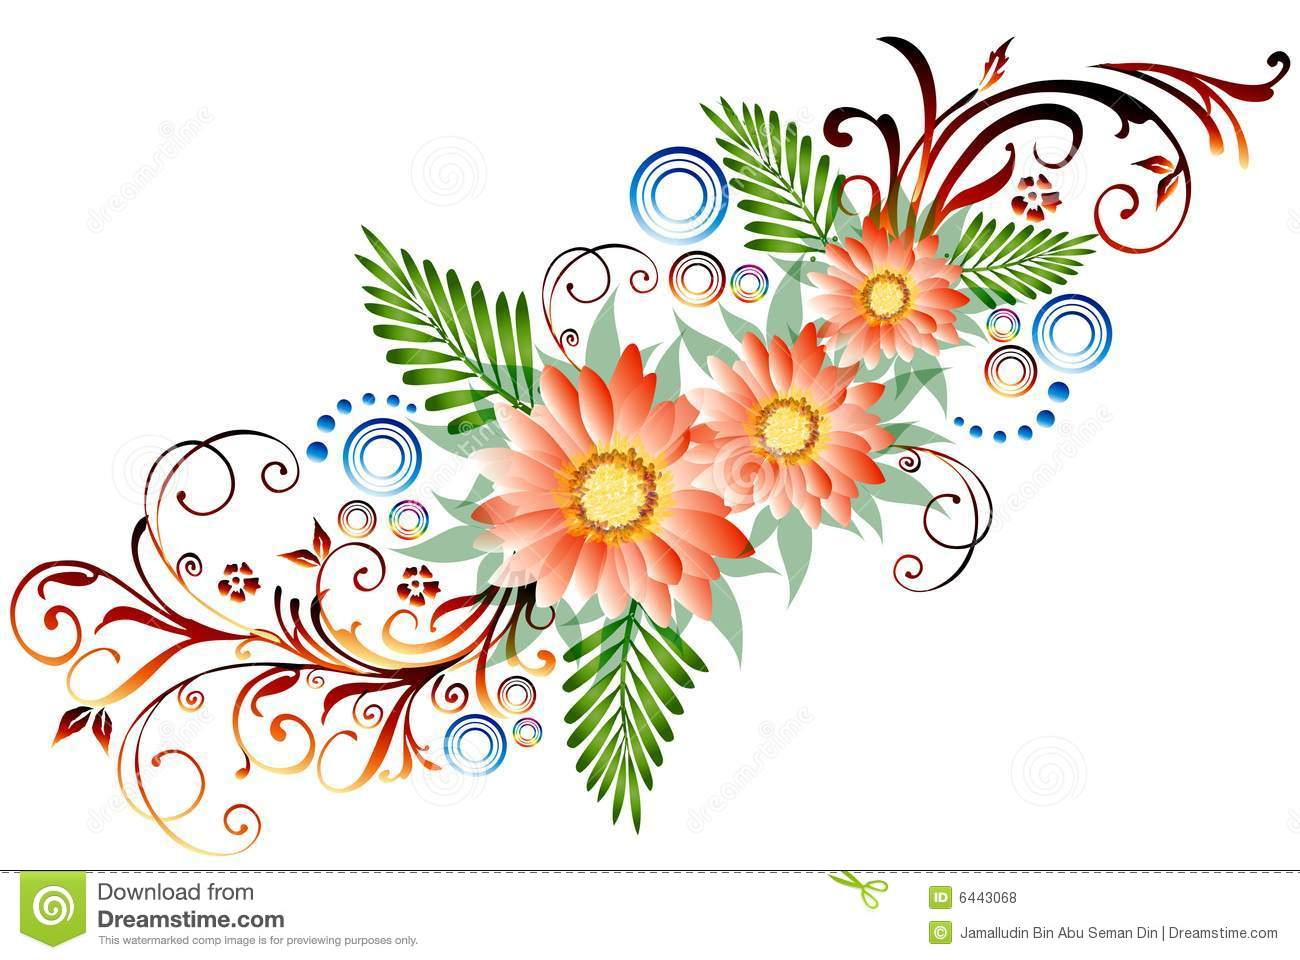 Flower border drawing at getdrawings free for personal use 1300x960 flower border drawing floral border stock illustration image izmirmasajfo